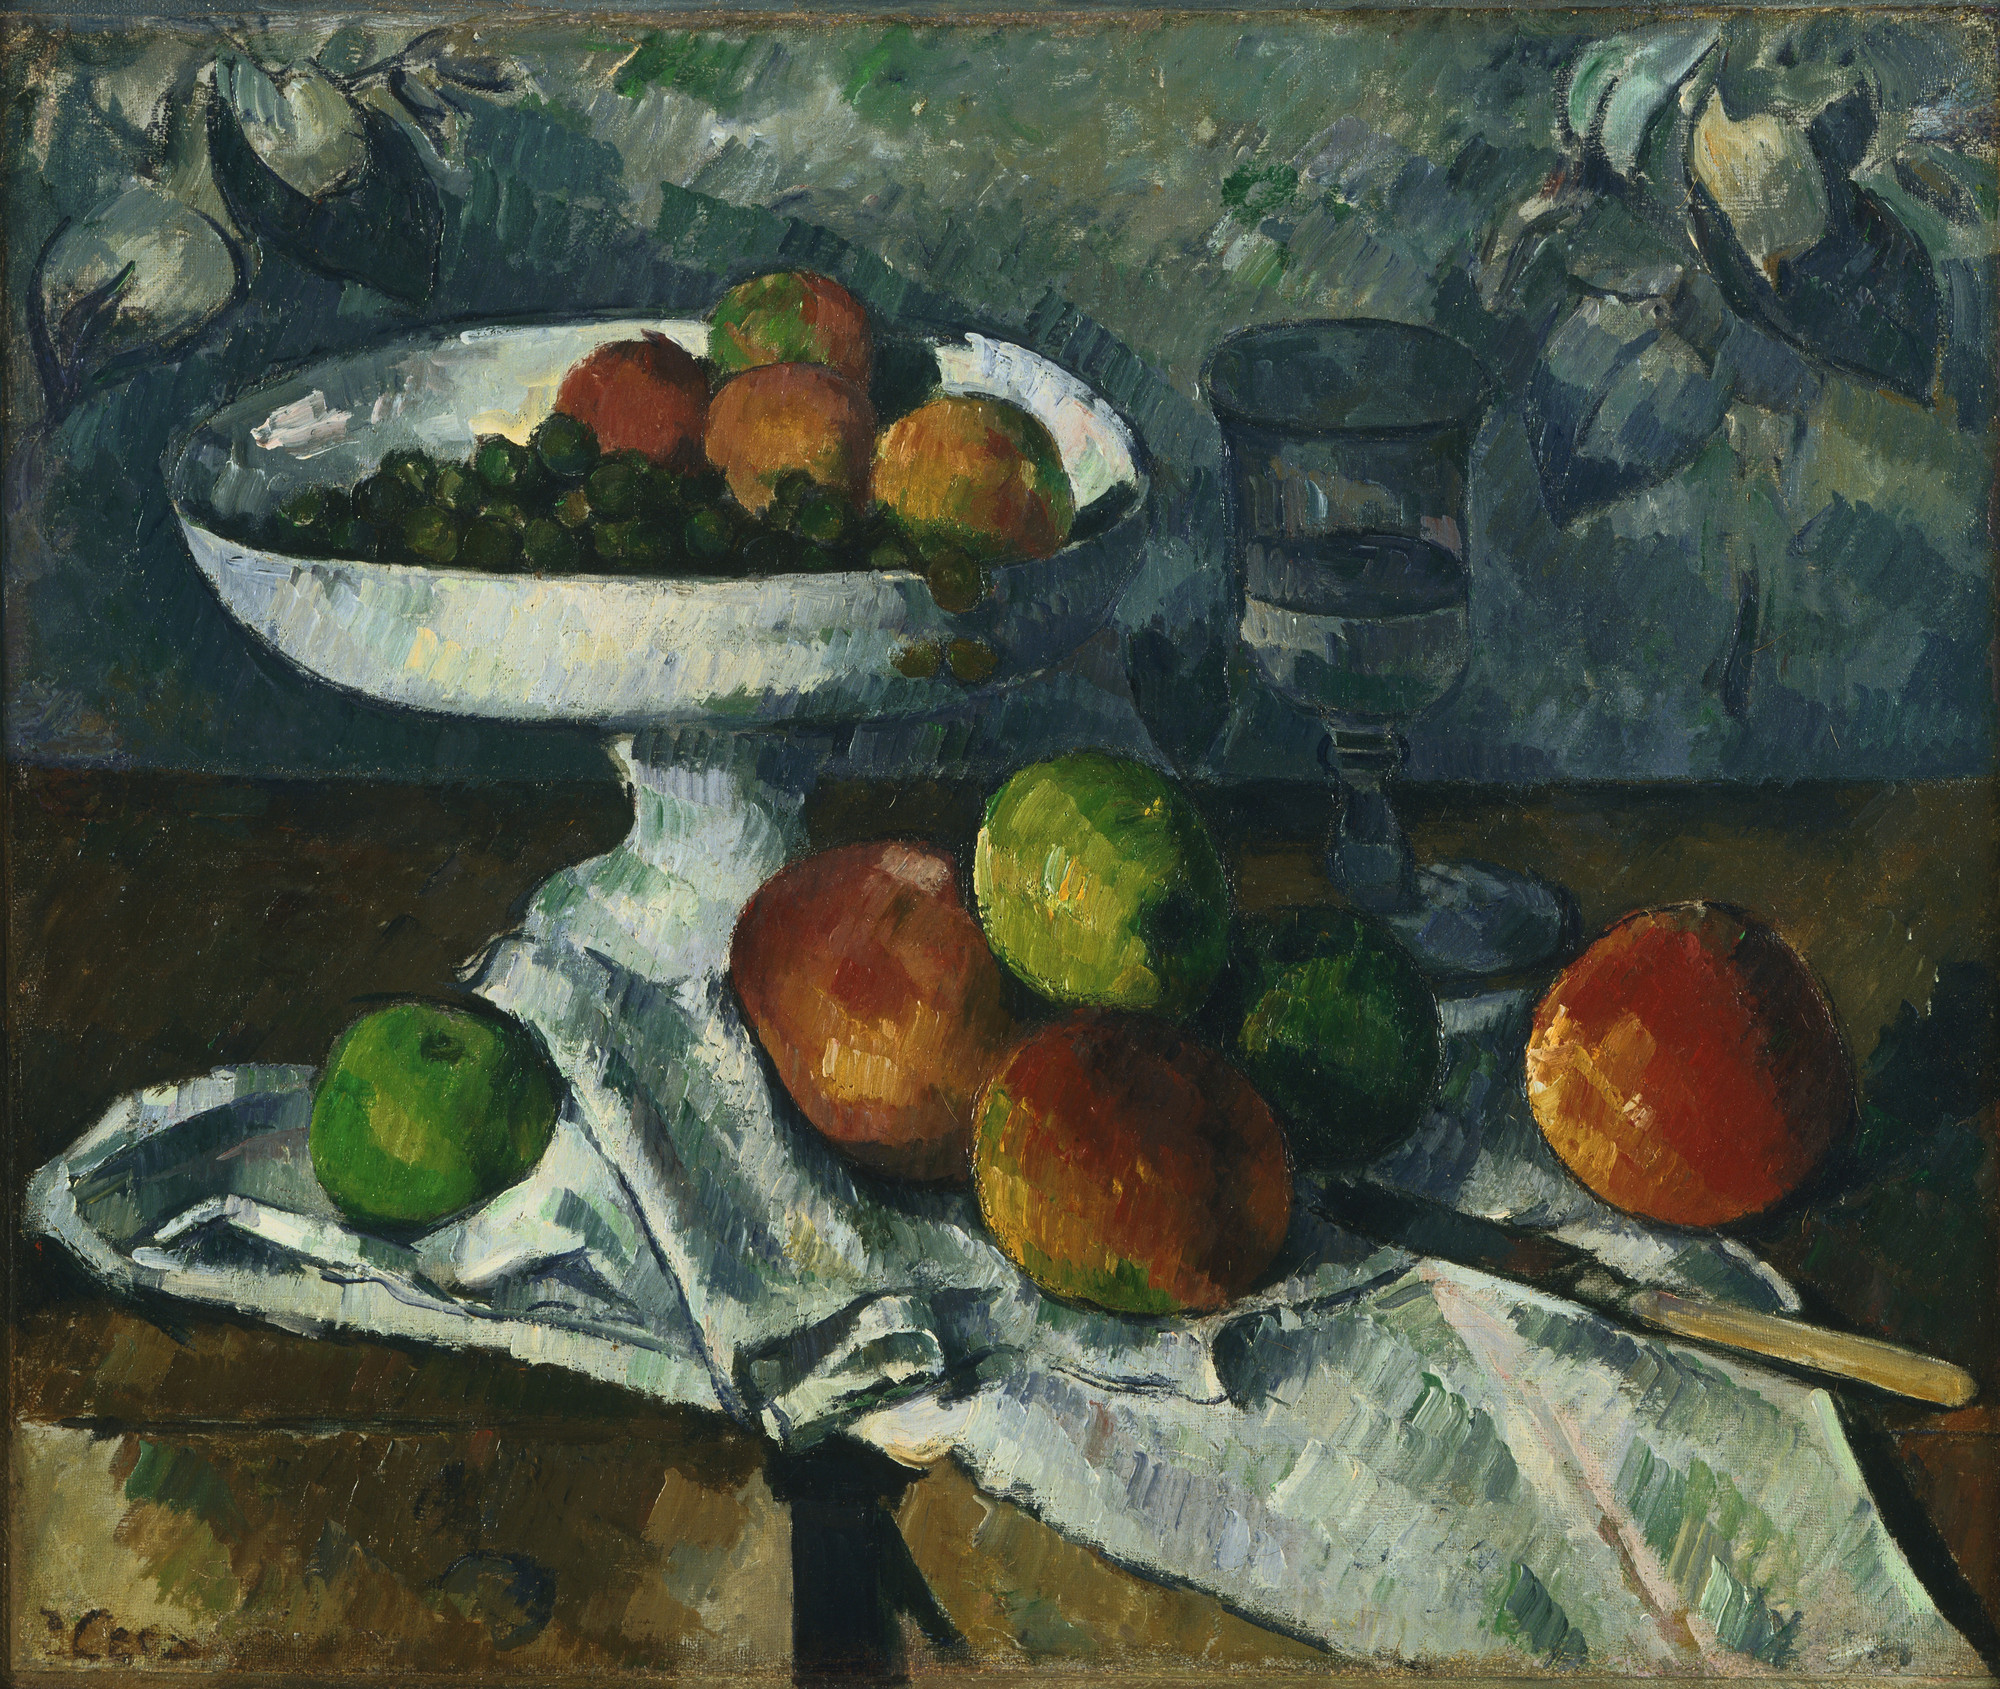 Paul Cézanne. Still Life with Fruit Dish. 1879-80